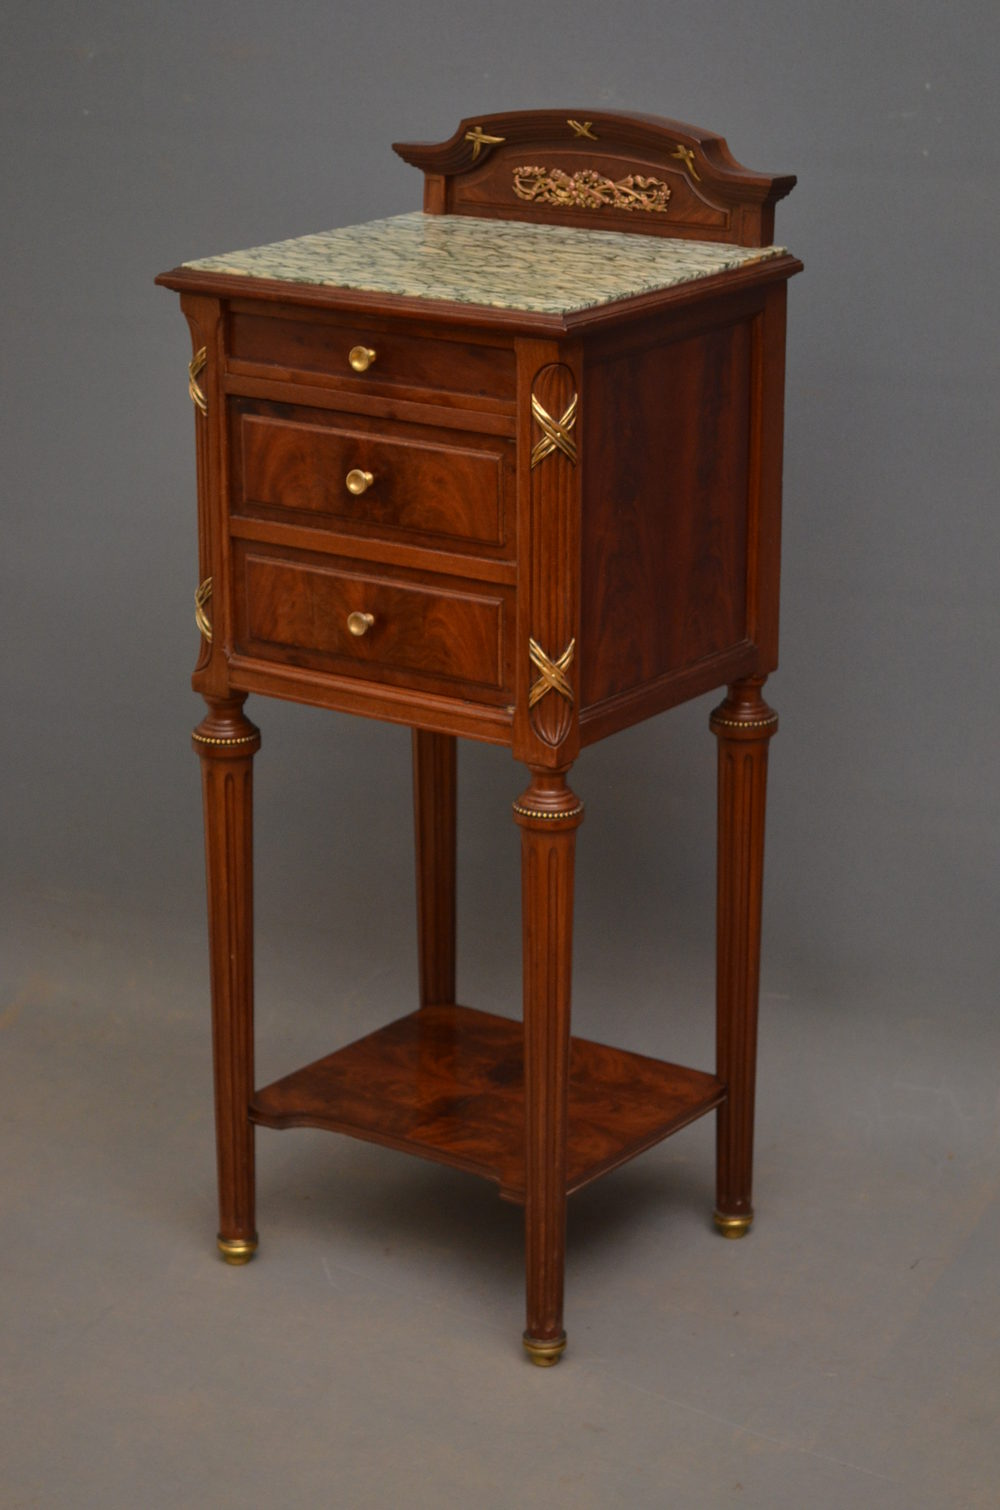 French Bedside Cabinet in Mahogany Antique ... - French Bedside Cabinet In Mahogany - Antiques Atlas